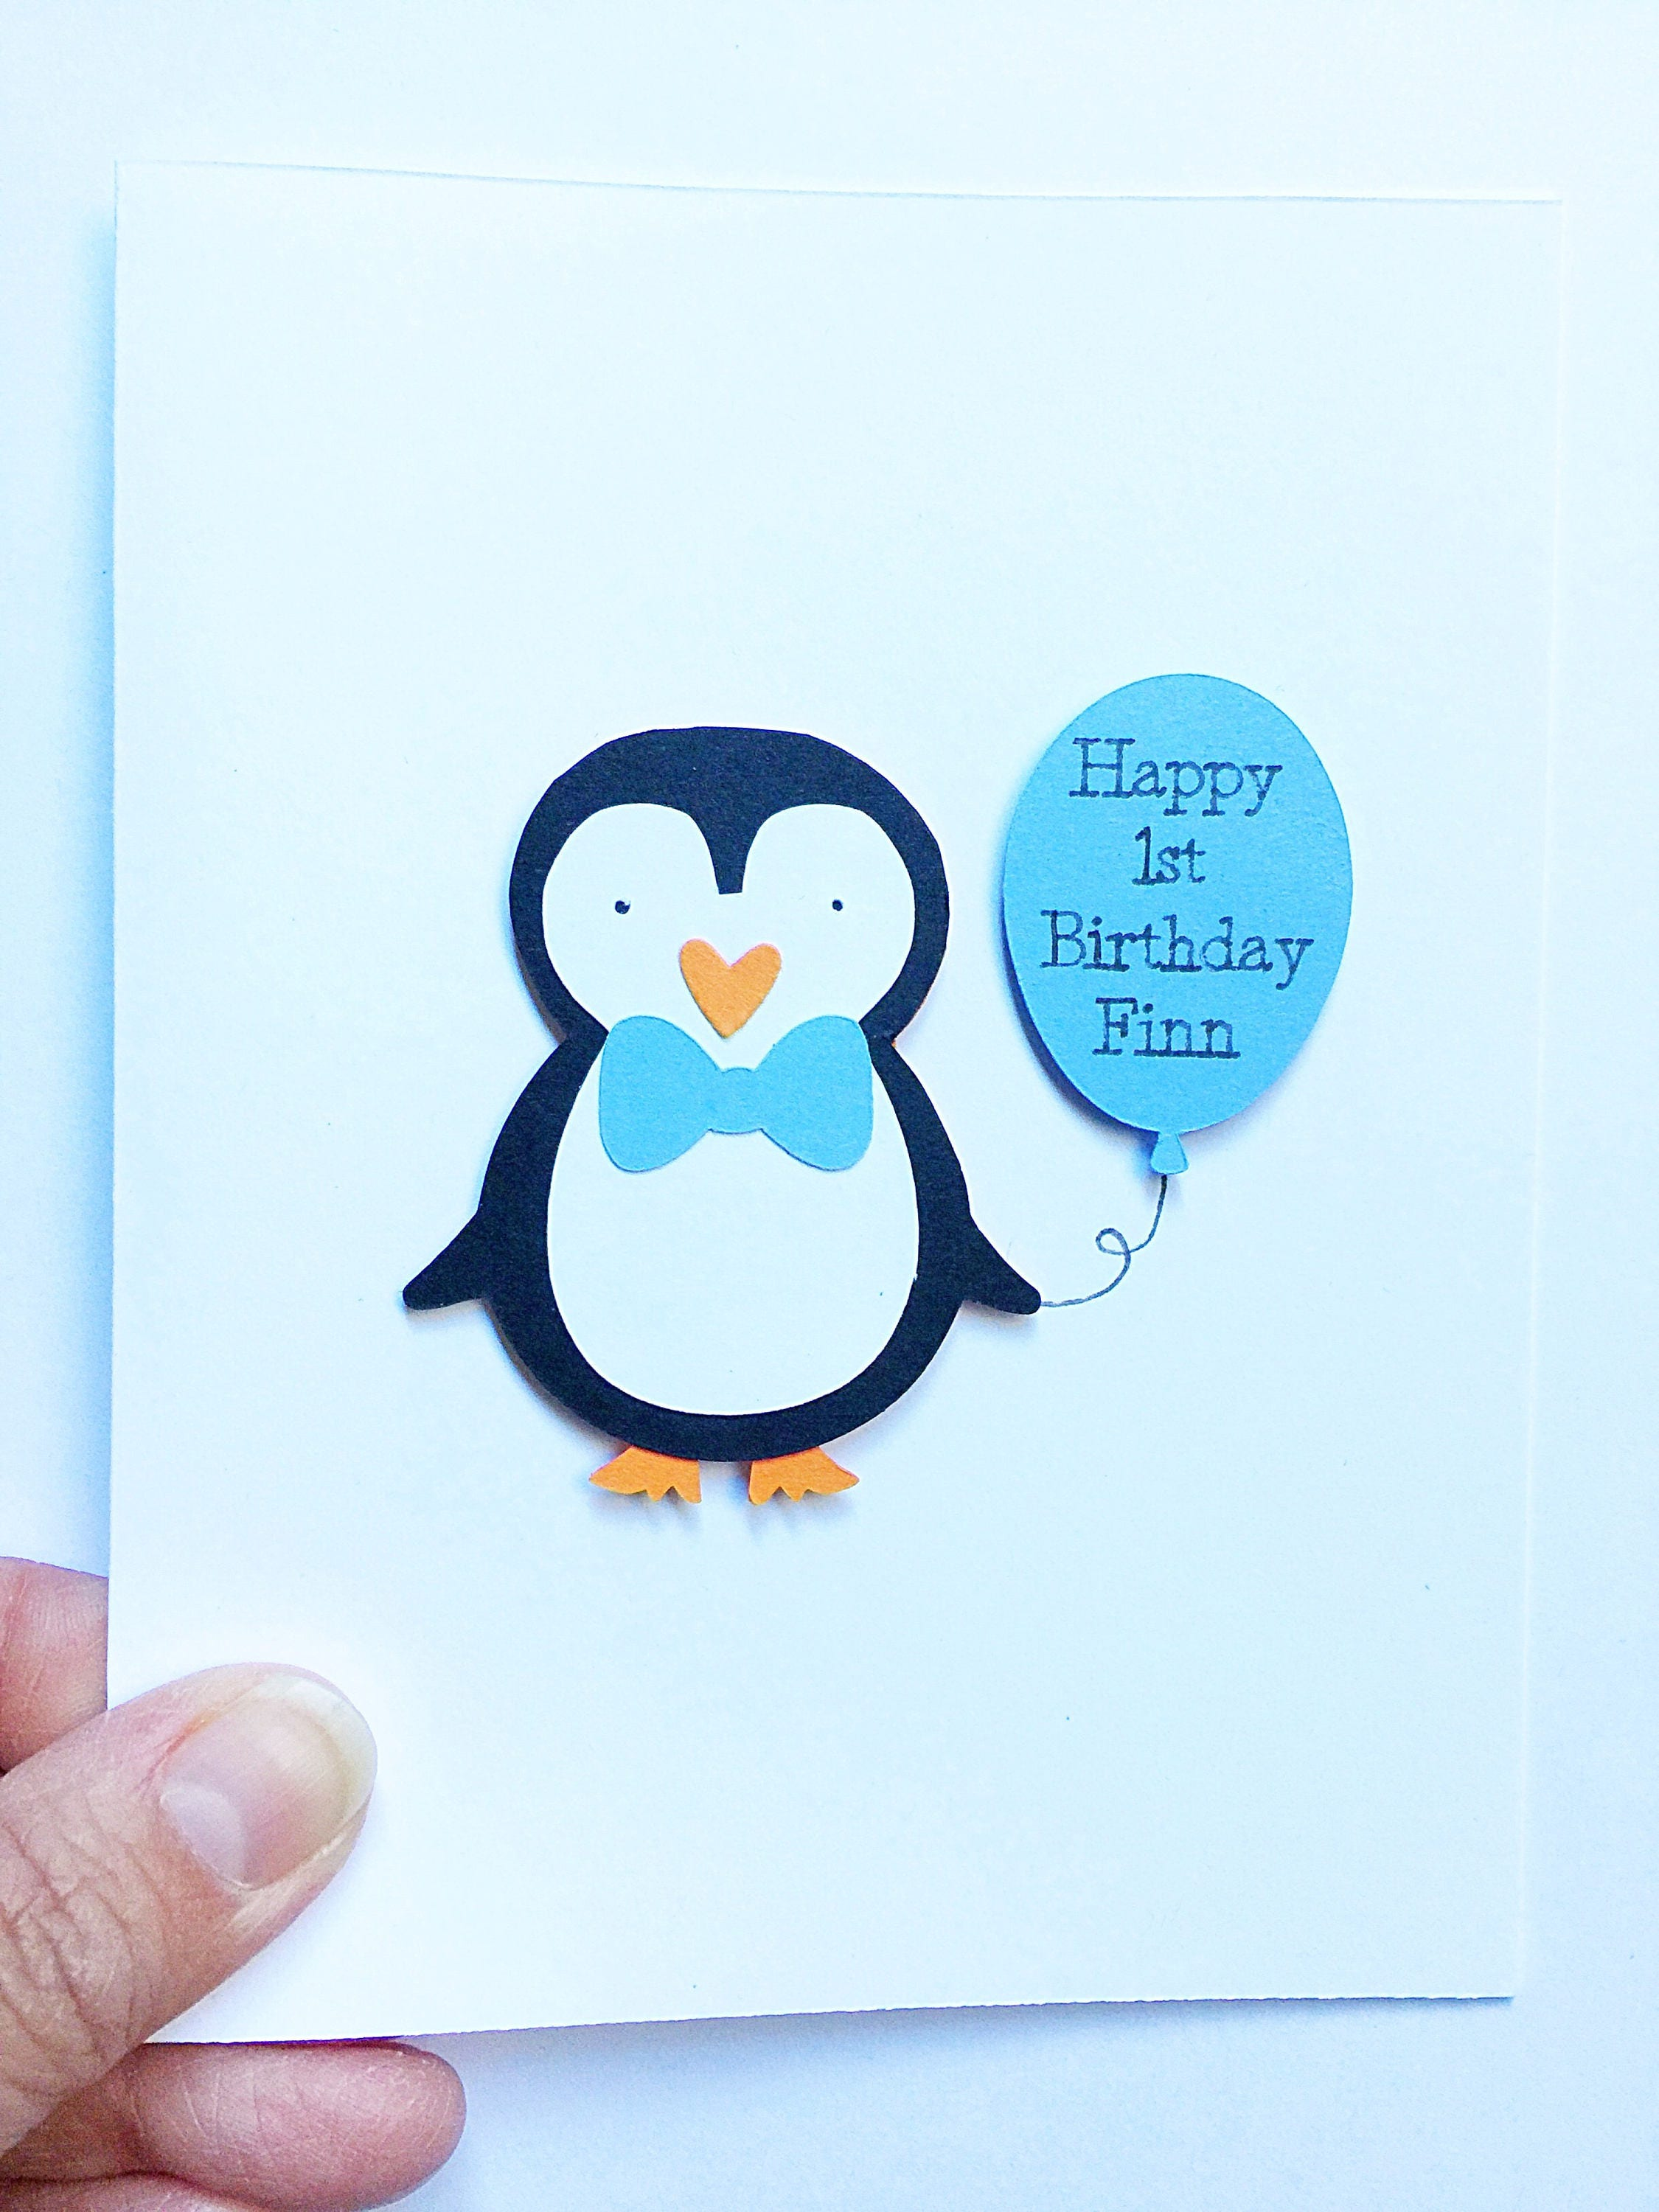 penguin party invitations personalized stationery penguin birthday party first - Winter Onederland Party Invitations